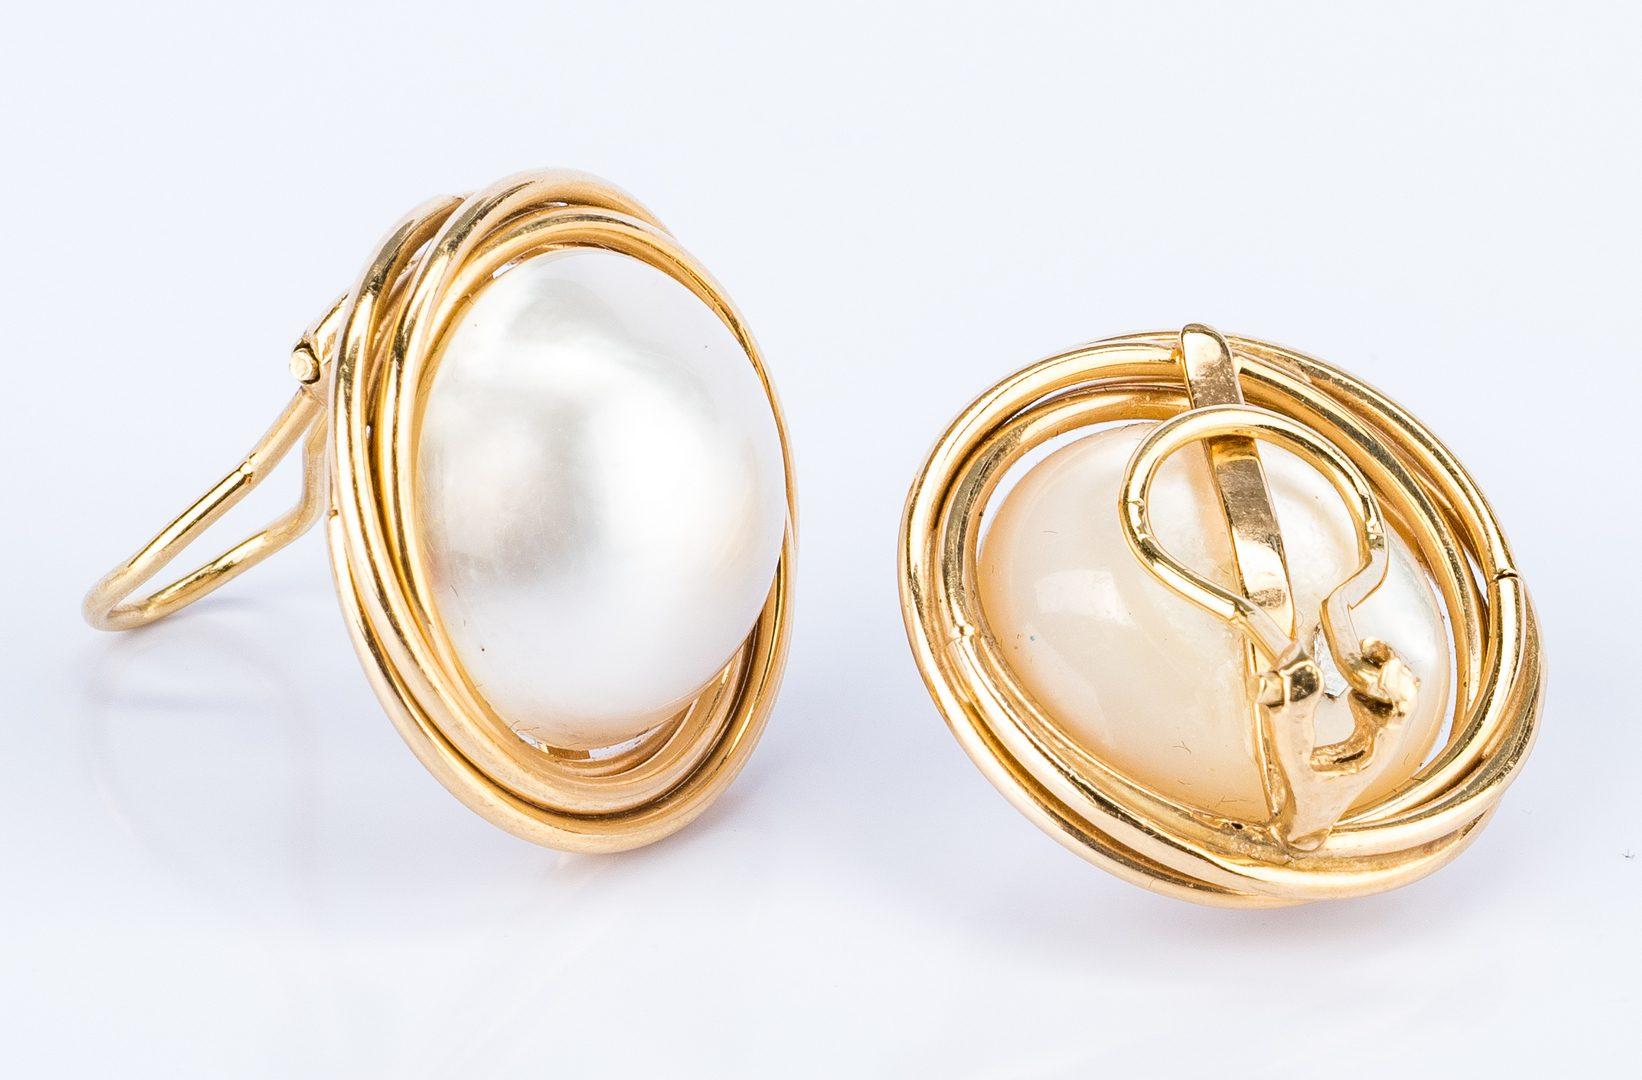 Lot 36: 3 Pcs. of 14K Pearl Jewelry